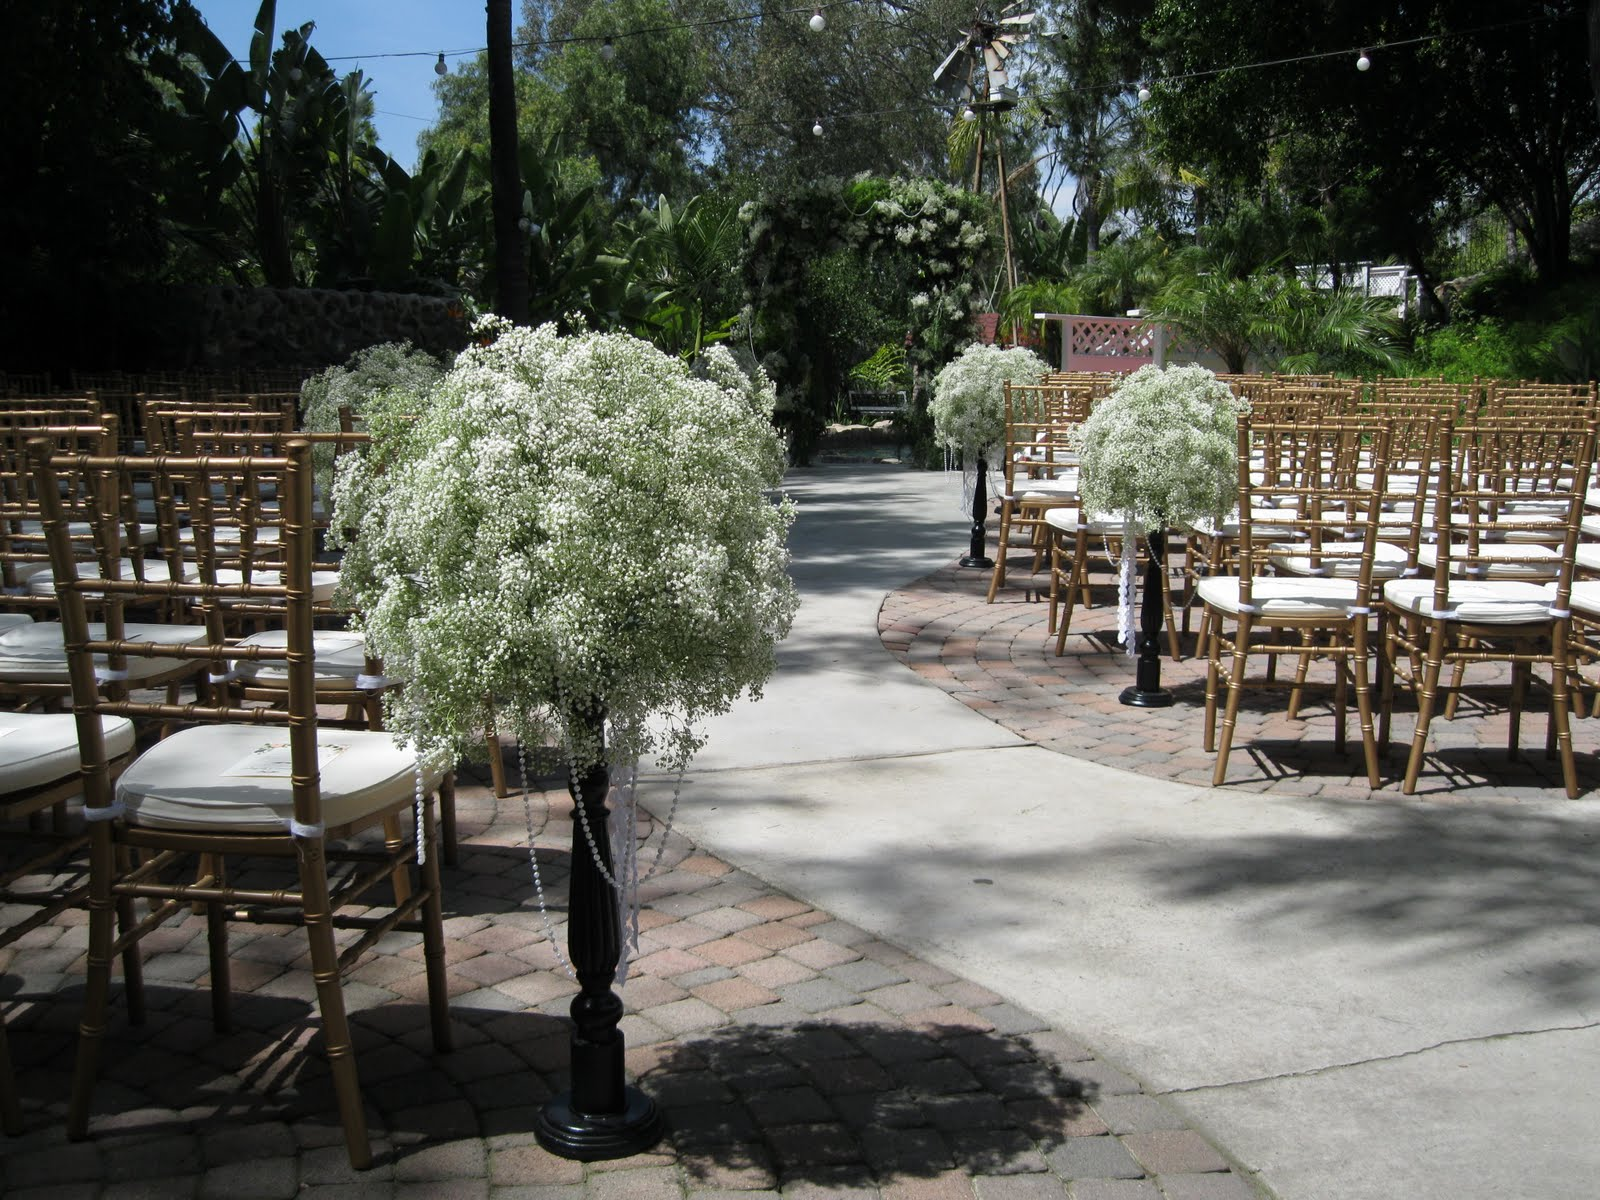 Babys Breath never looked so